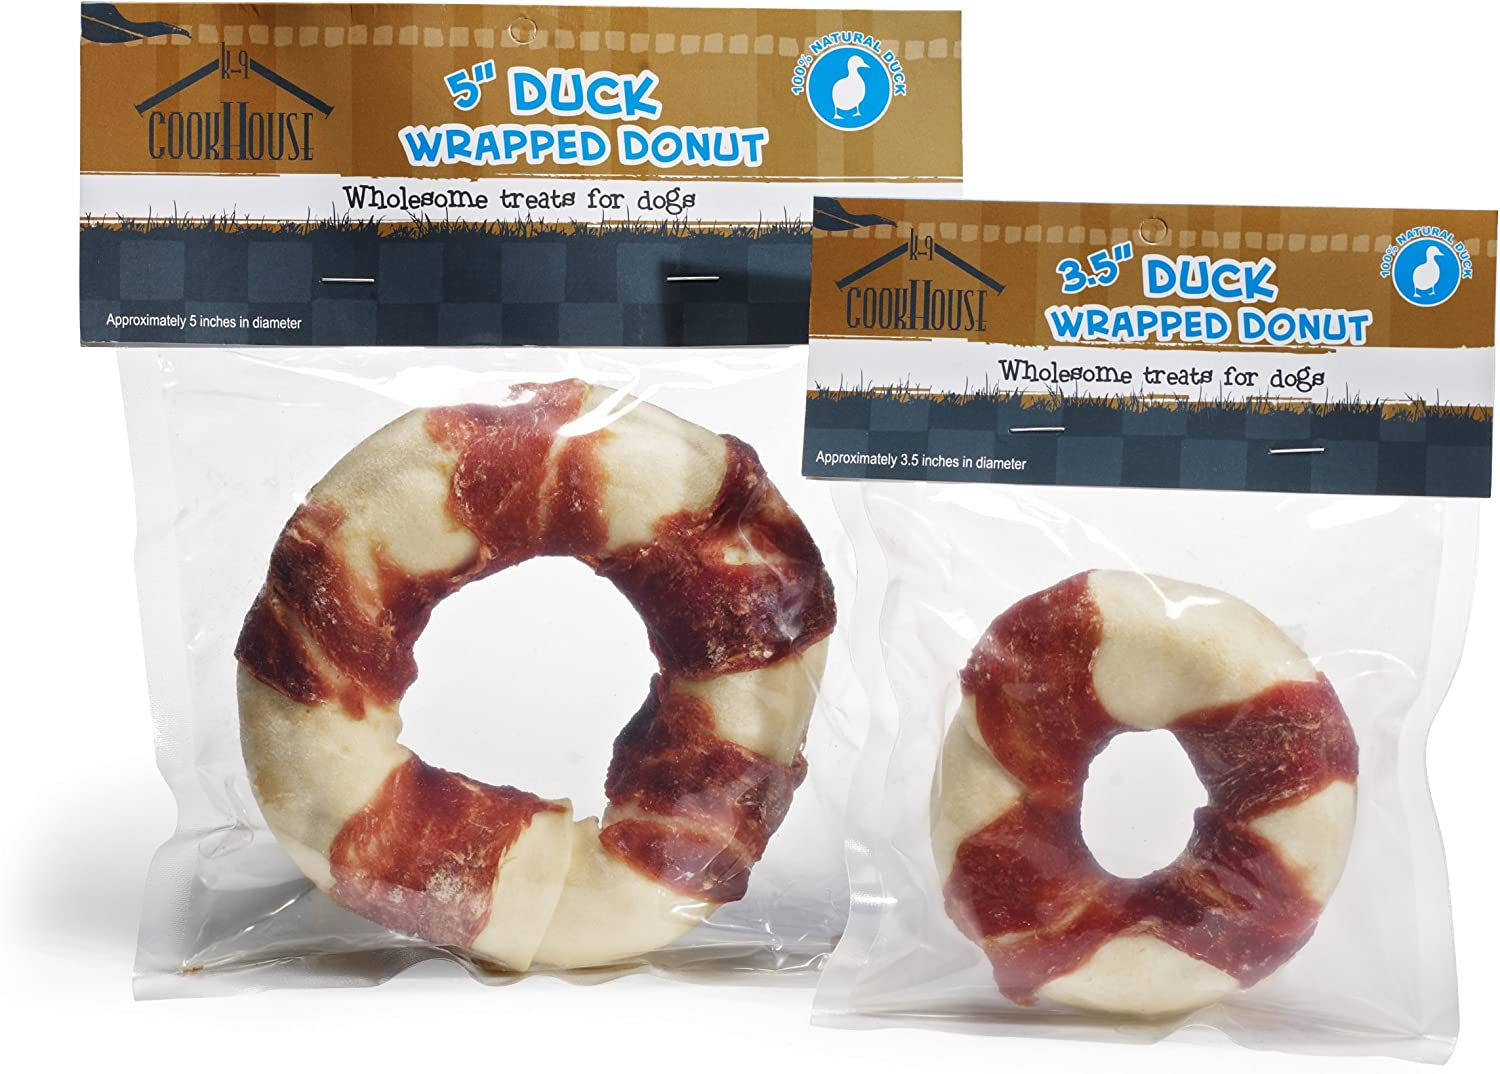 """Dog 100/% Natural Chicken Wrapped Donut K9 Cookhouse 3.5/"""" Wholesome Chew Chews"""